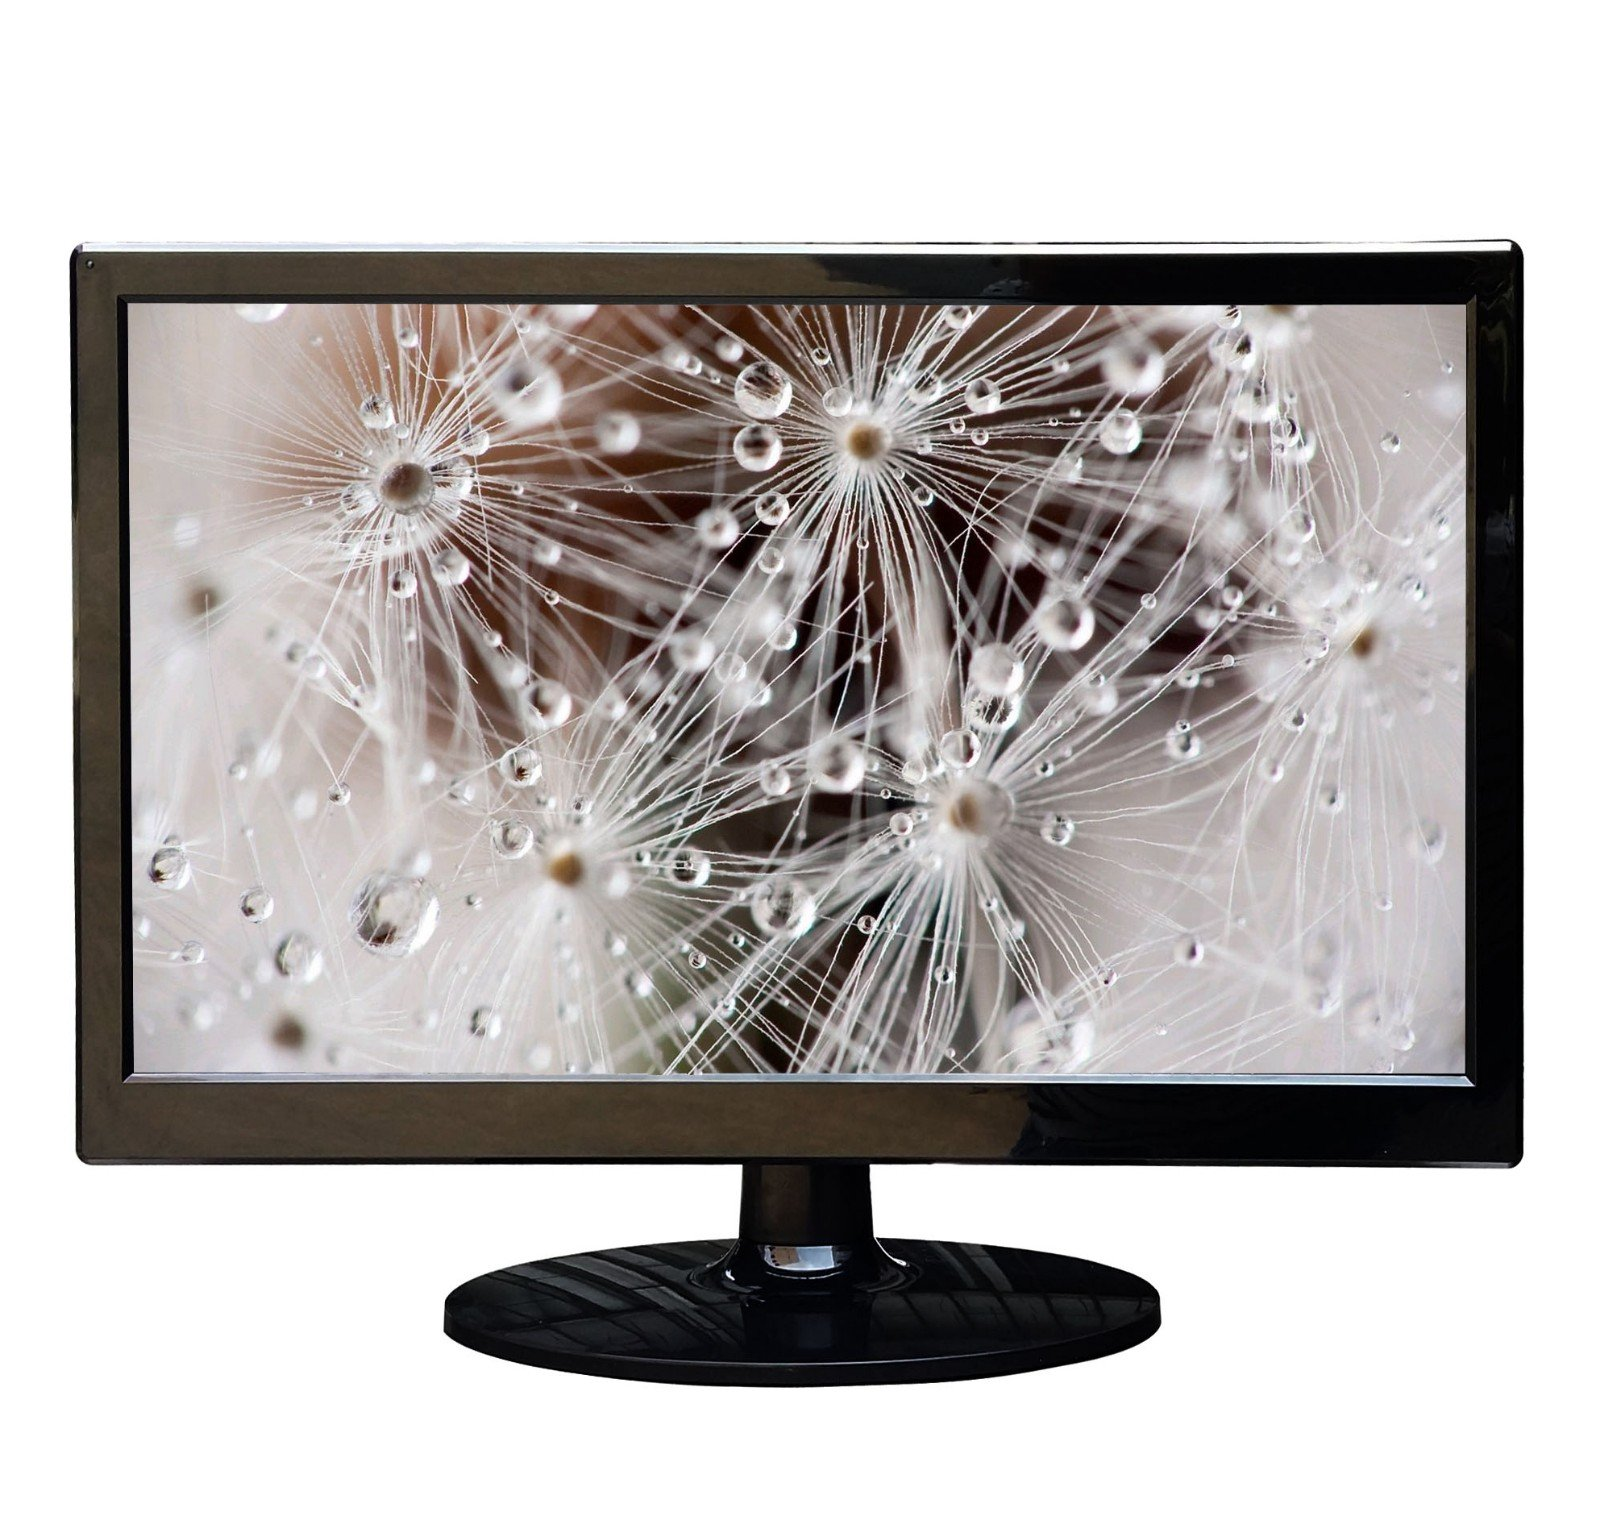 Xinyao LCD full hd display monitor 18.5 inch price with laptop panel for lcd screen-3